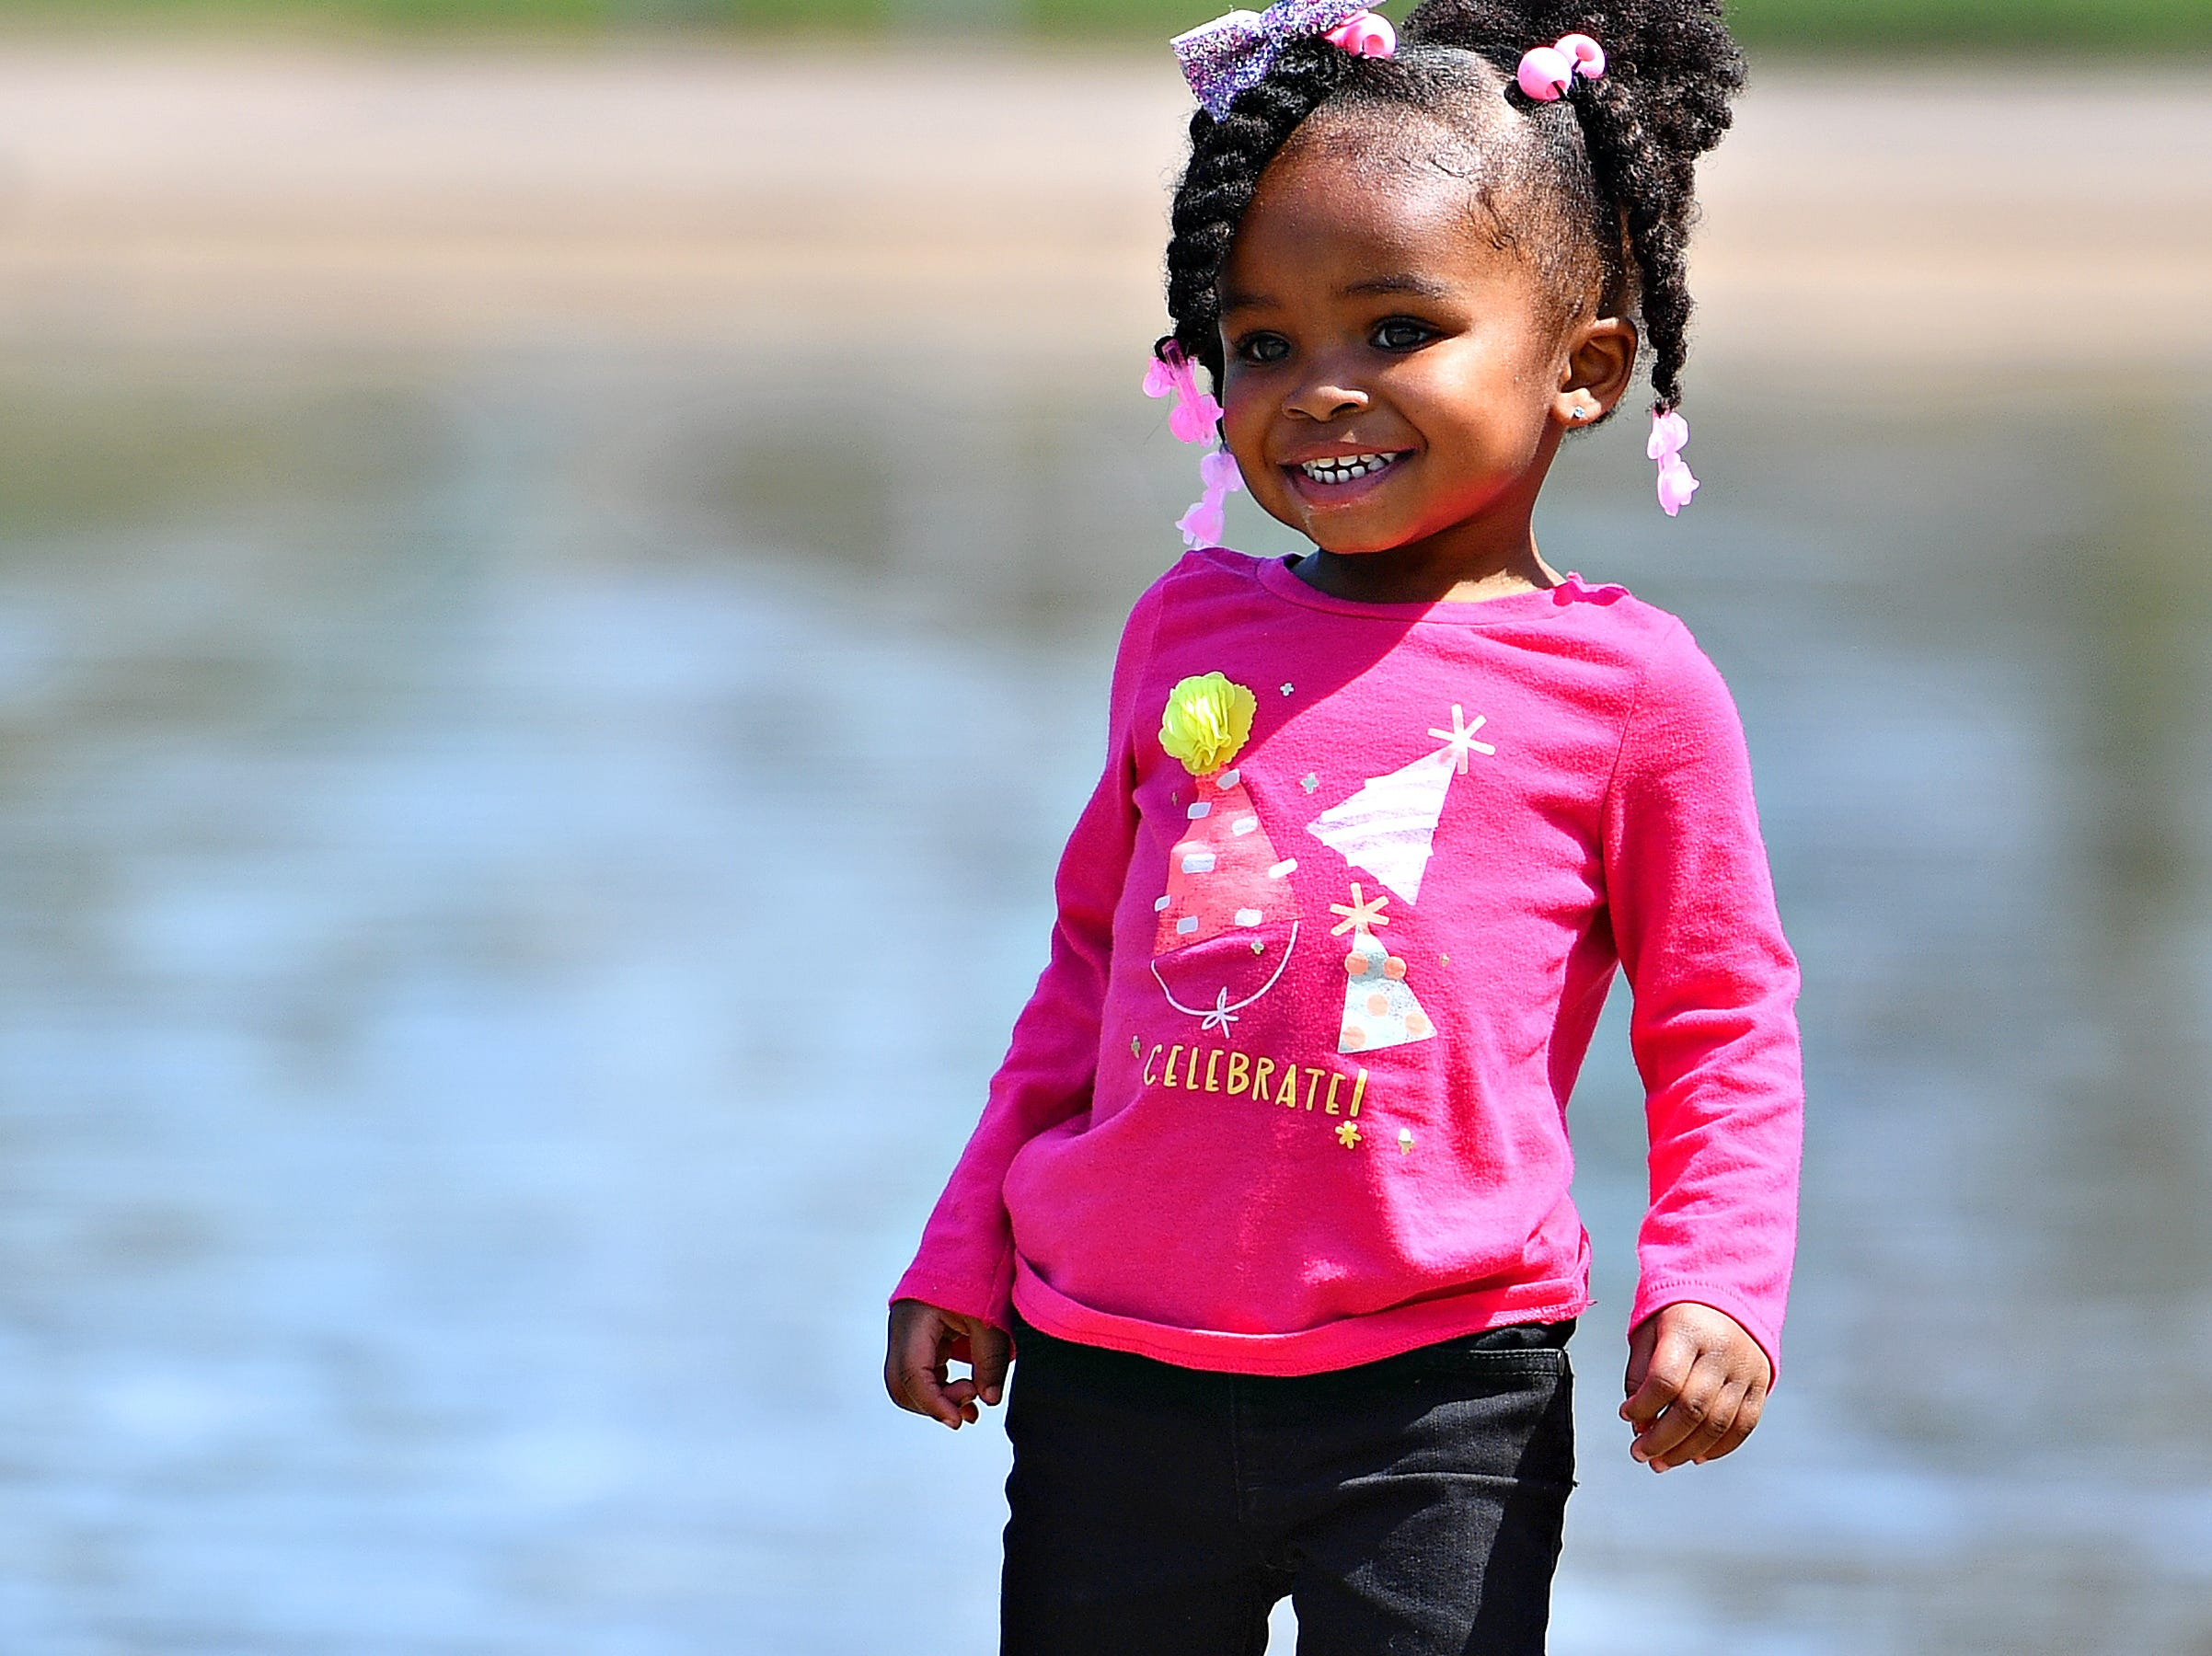 Ireyanna Rice, 2, laughs as she plays near the ducks following the 44th Annual York City Easter Egg Hunt at Kiwanis Lake in York City, Saturday, April 13, 2019. Dawn J. Sagert photo